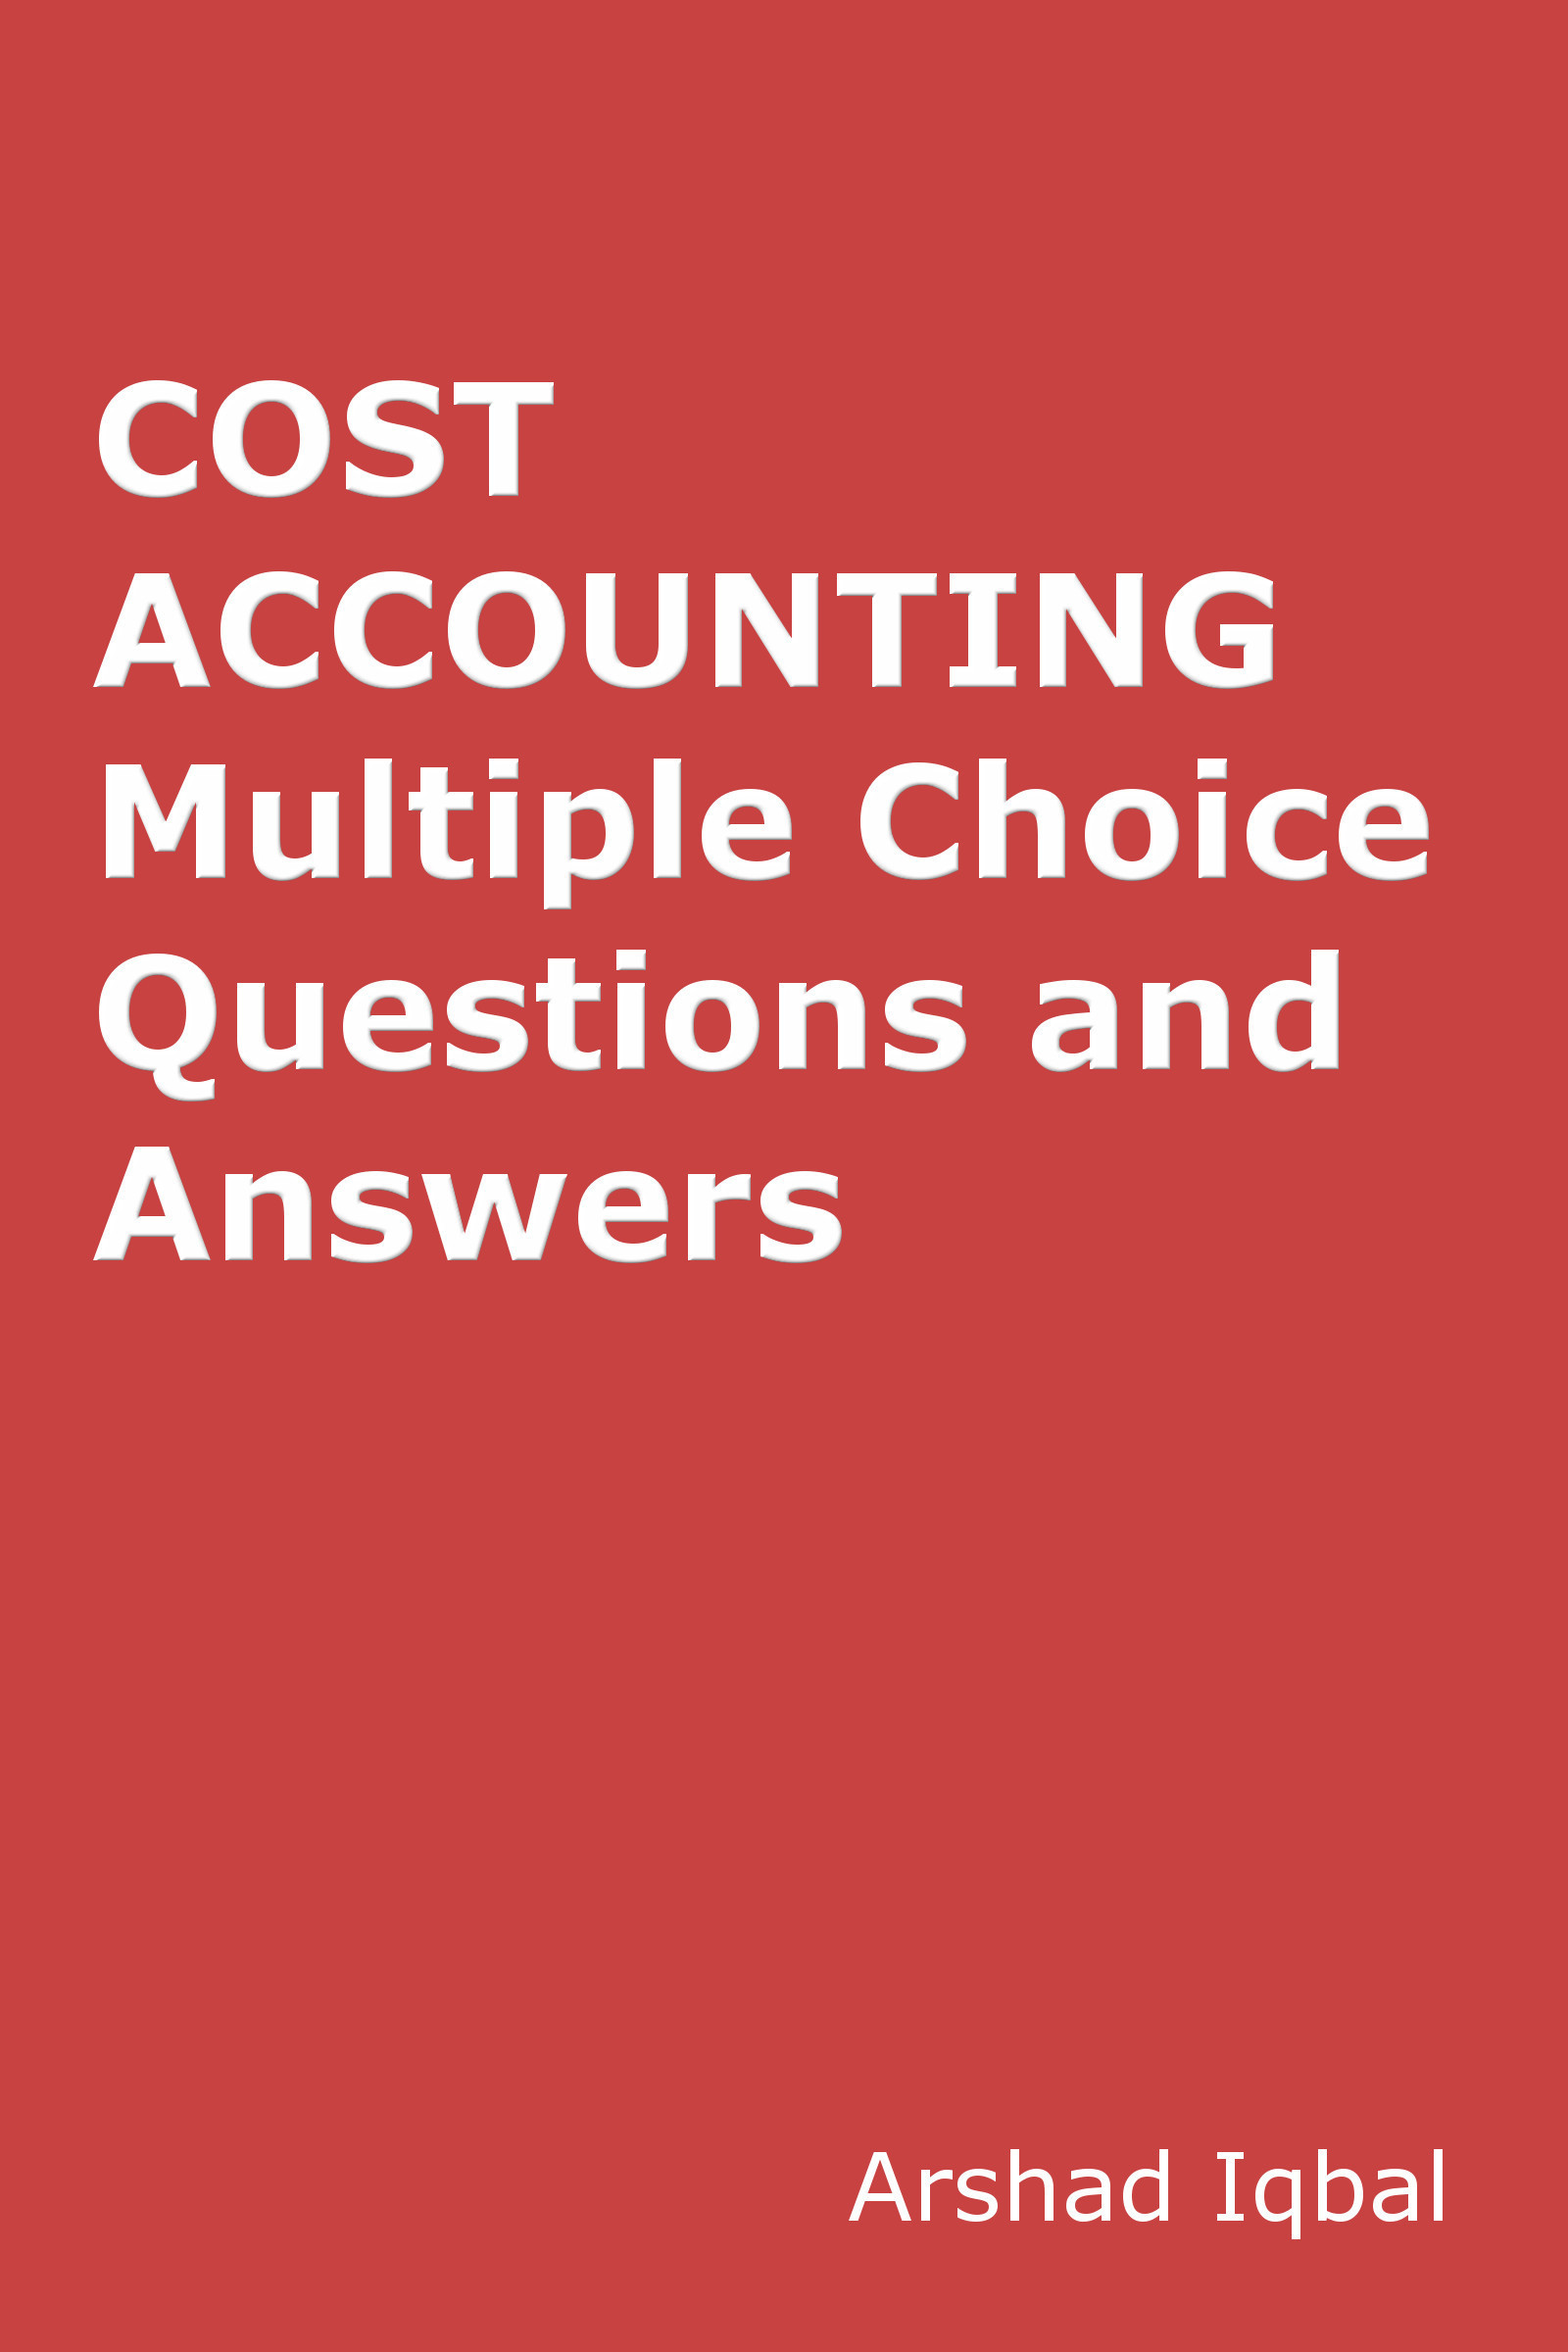 Cost Accounting Quiz Questions Answers: Multiple Choice MCQ Practice Tests